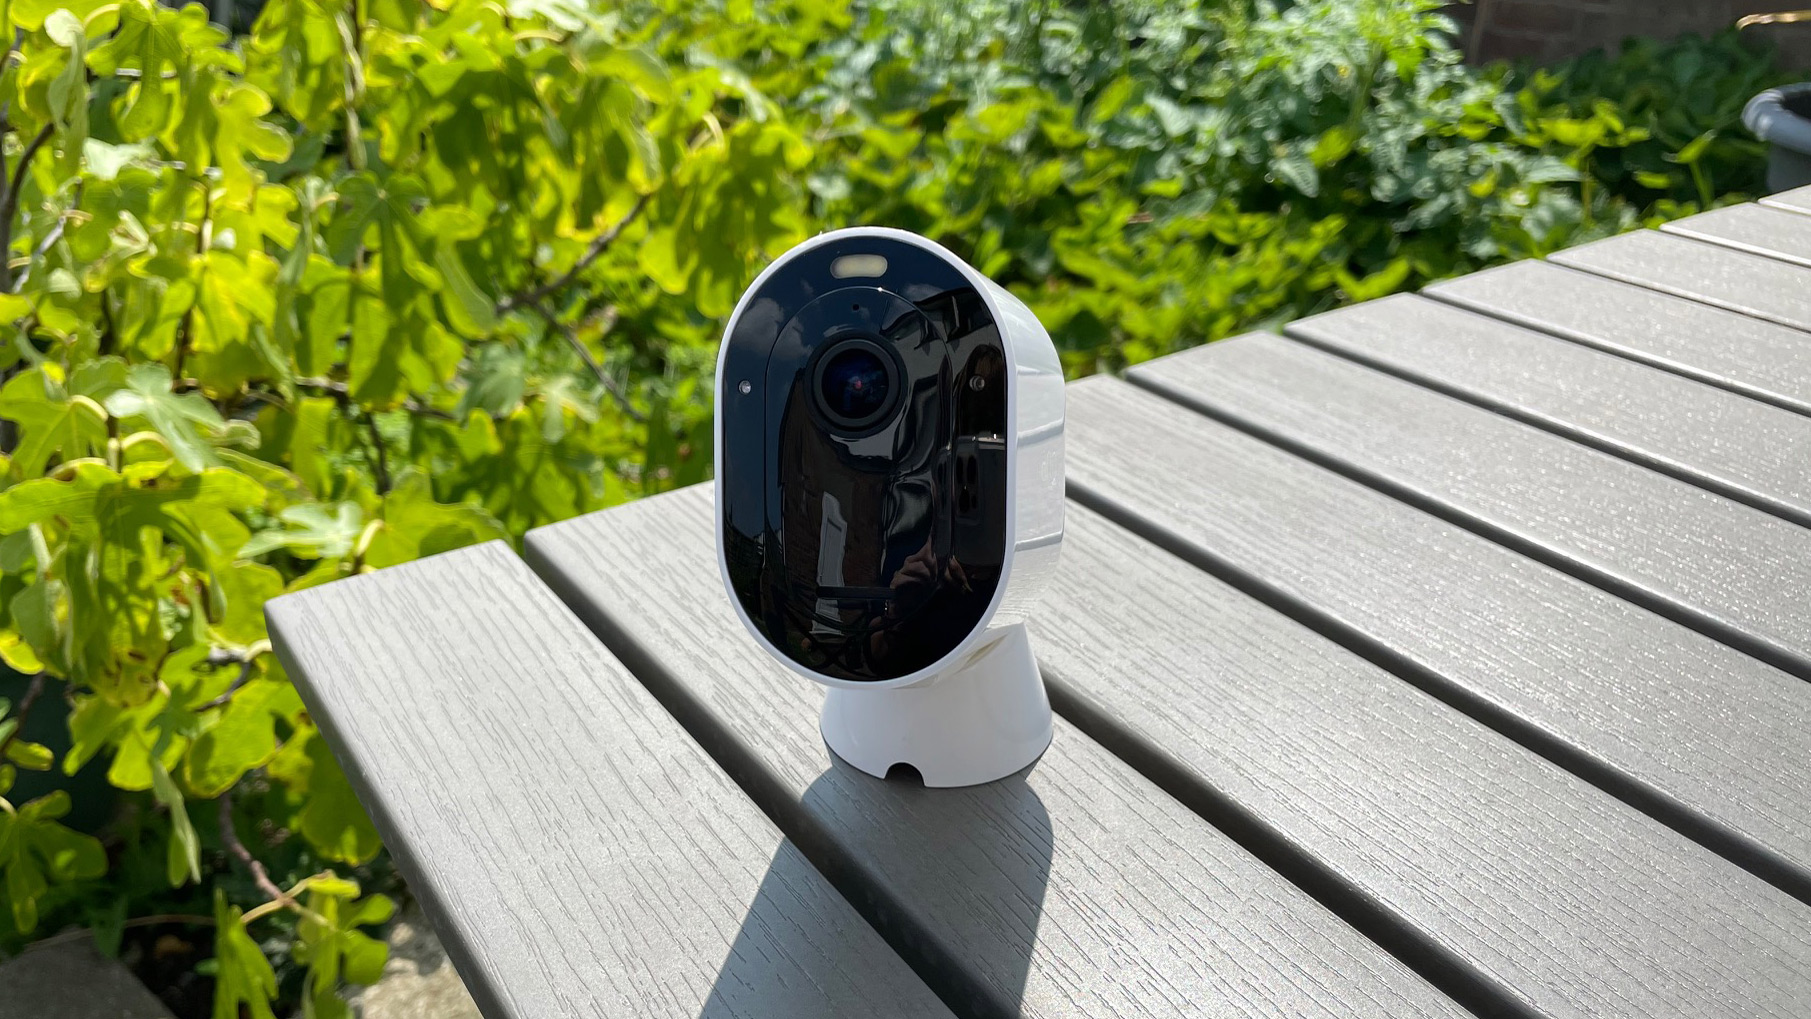 Arlo Pro 4 on its magnetic mount table in the garden